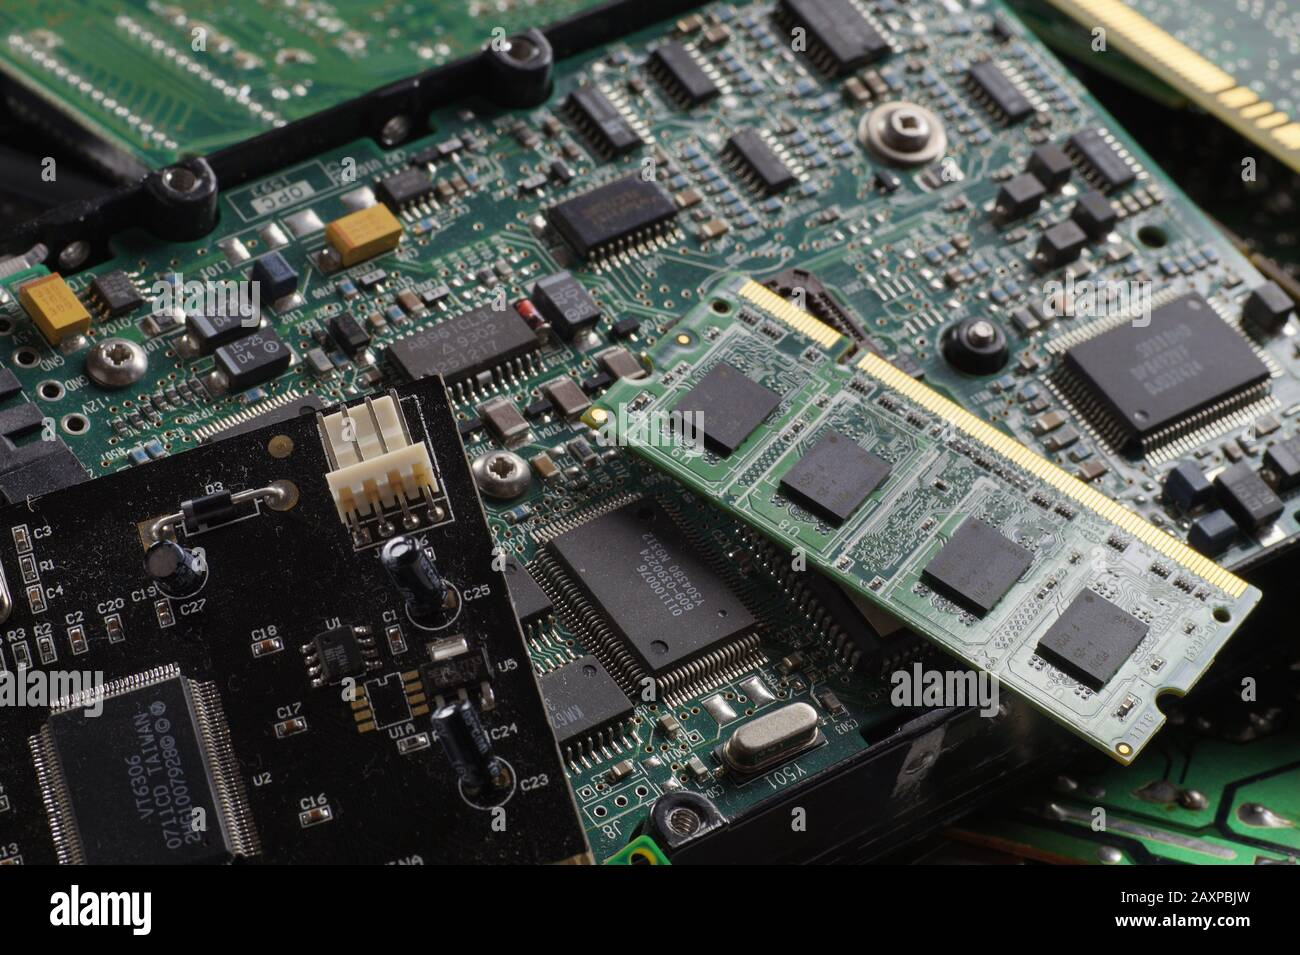 RAM memories, hard drives, expansion cards. Used consumer electronics components. Stock Photo